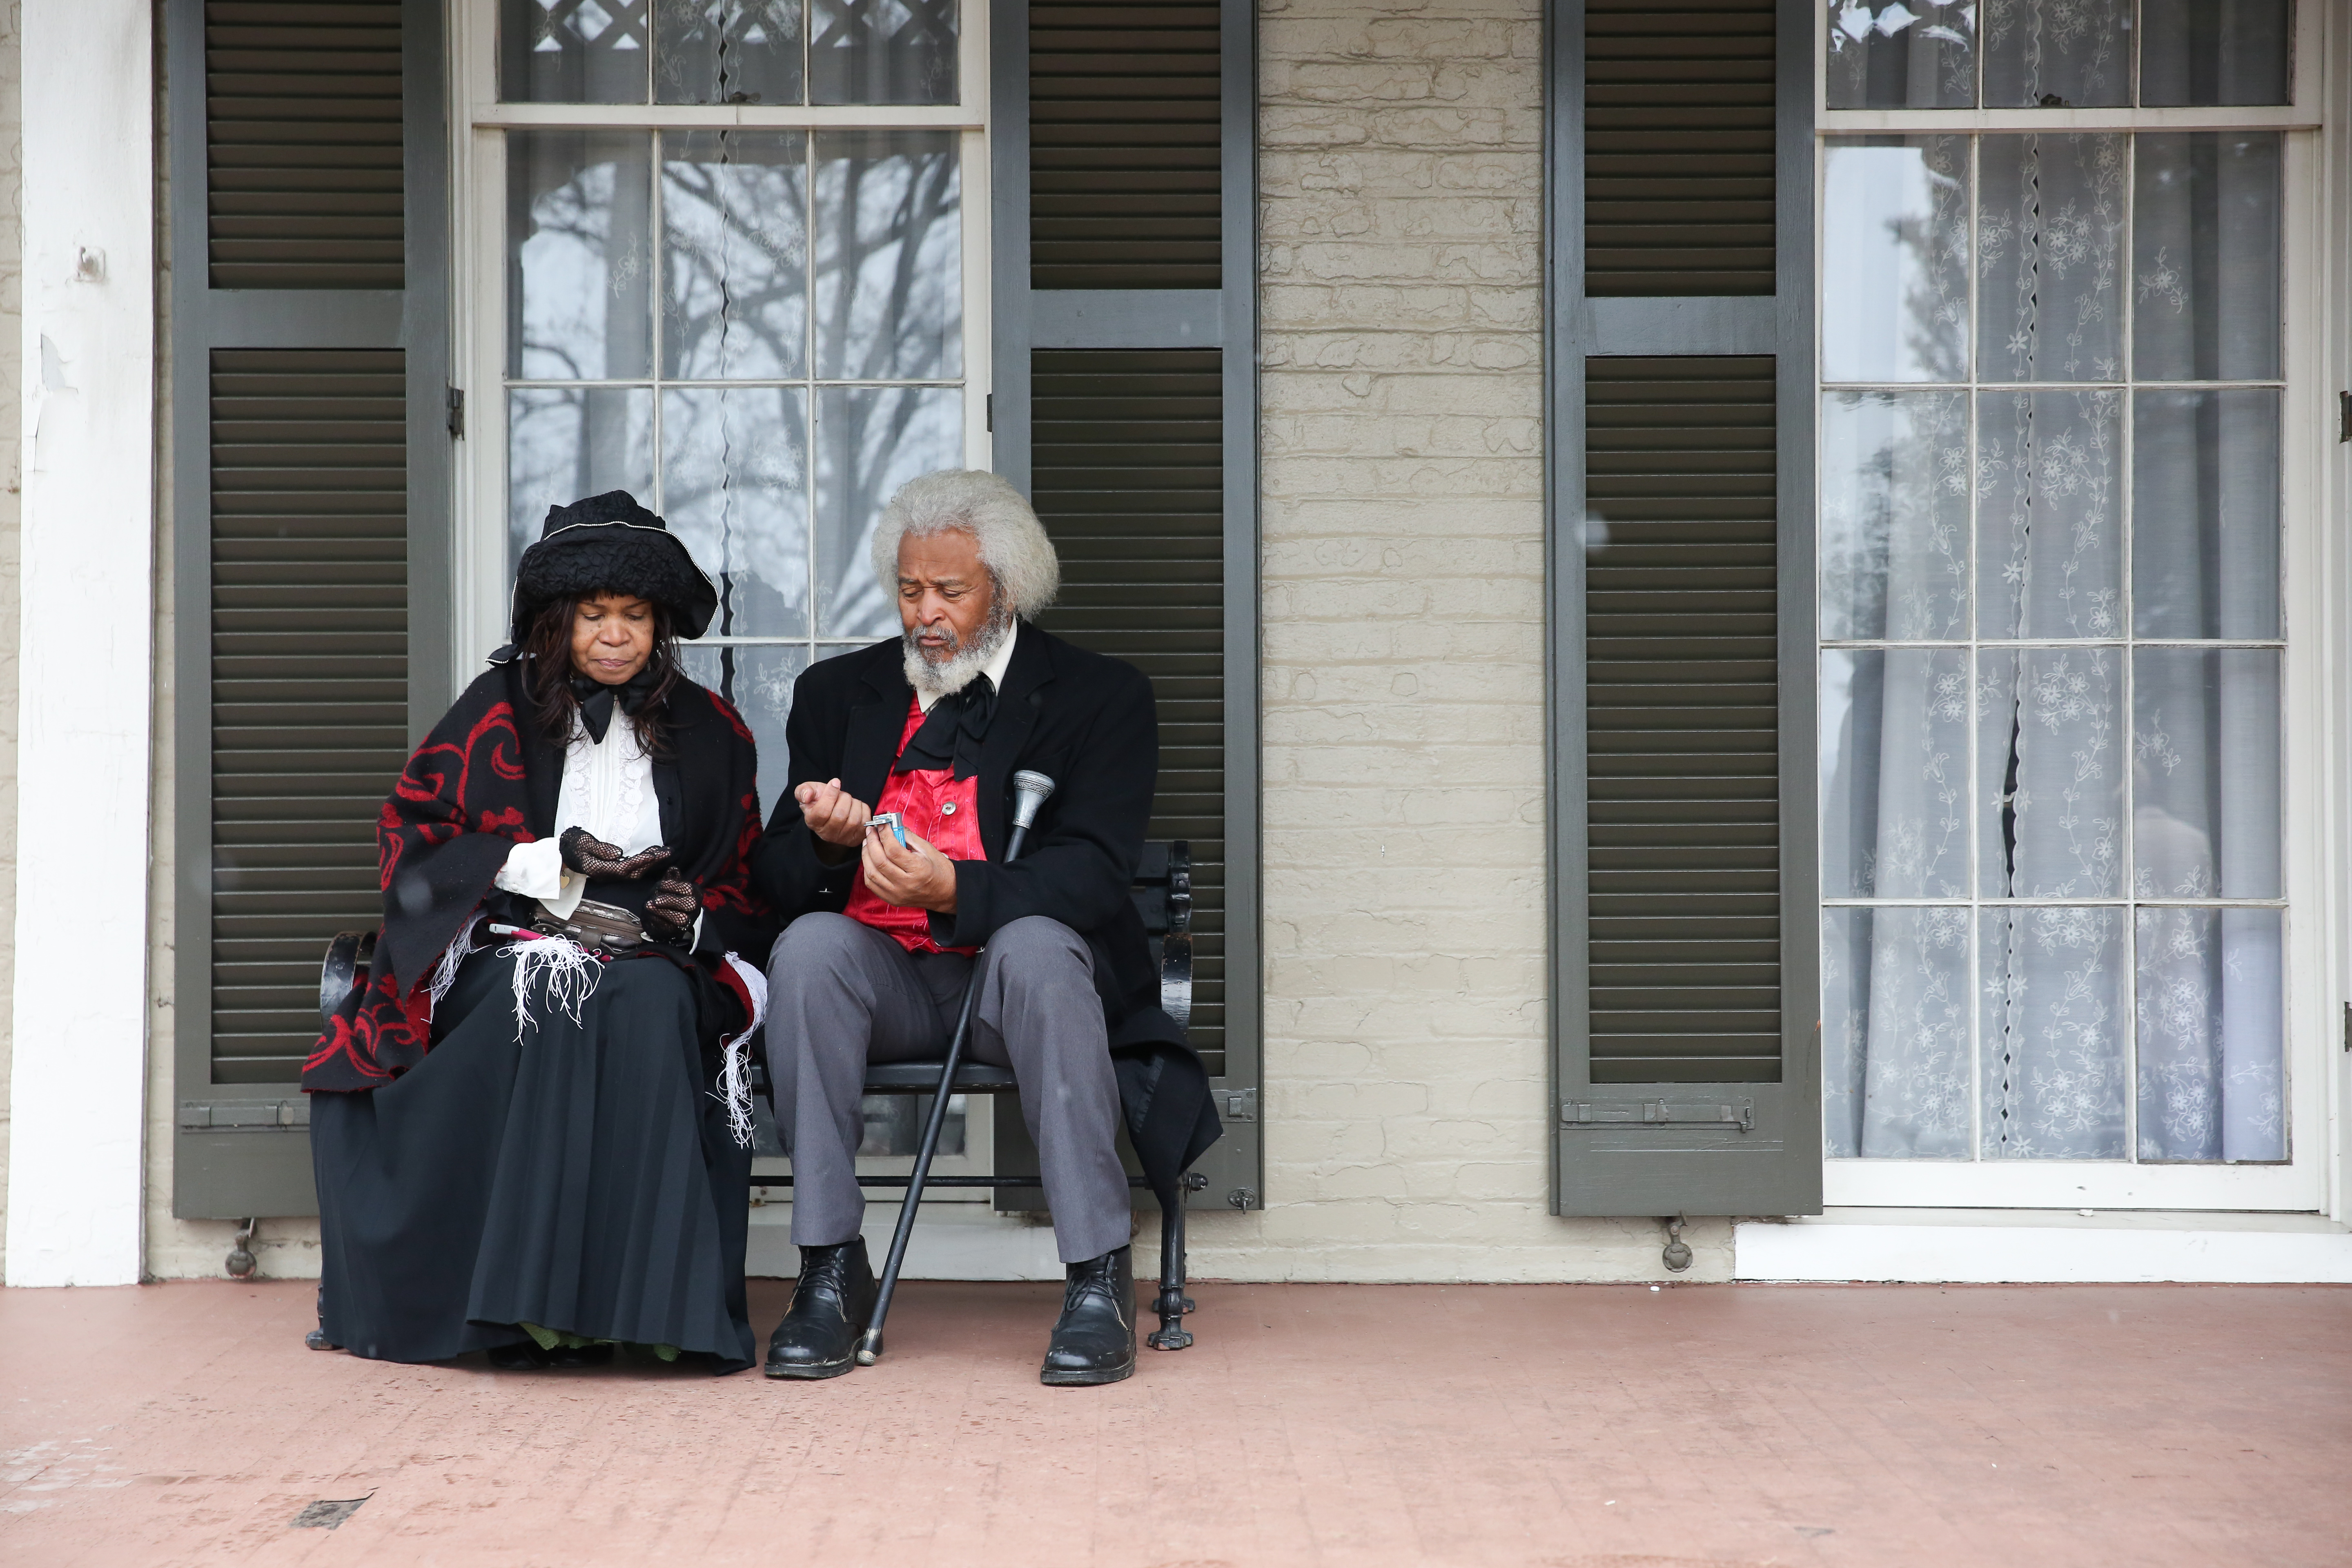 2018 marks the bicentennial of legendary abolitionist, orator and social justice advocate Frederick Douglass' birth and NPS is celebrating with a full year of programming at Cedar Hill, Douglass' home in Anacostia. The celebration kicked off this weekend with educational activities and historical impersonators of Douglass and other figures in the abolitionist movement. NPS is offering guided tours of Douglass' home throughout the year and elementary and high school students will be receiving special curriculums when they visit the site in honor of the bicentennial. (Amanda Andrade-Rhoades/DC Refined)